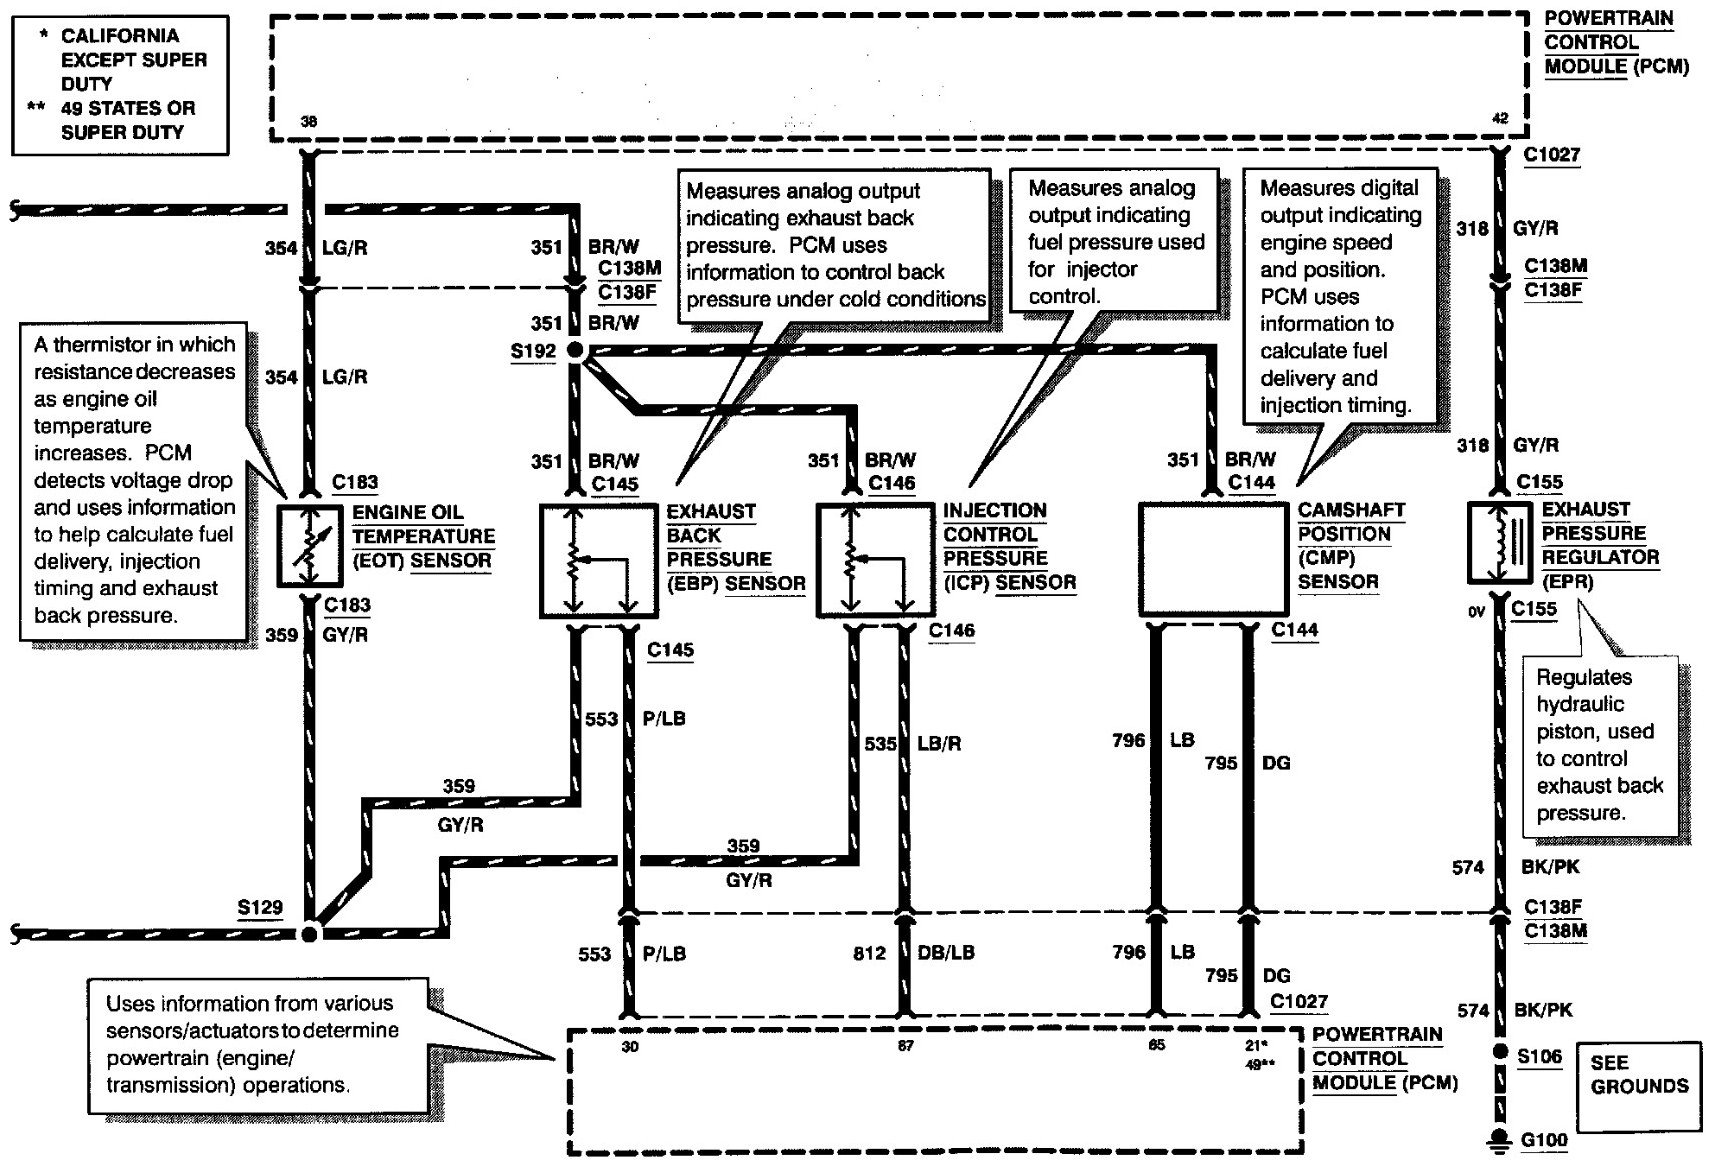 dexter ford diesel wiring diagram dexter commercial dryer wiring diagram does the wire for the cam. positioning sensor on a 1997 ...